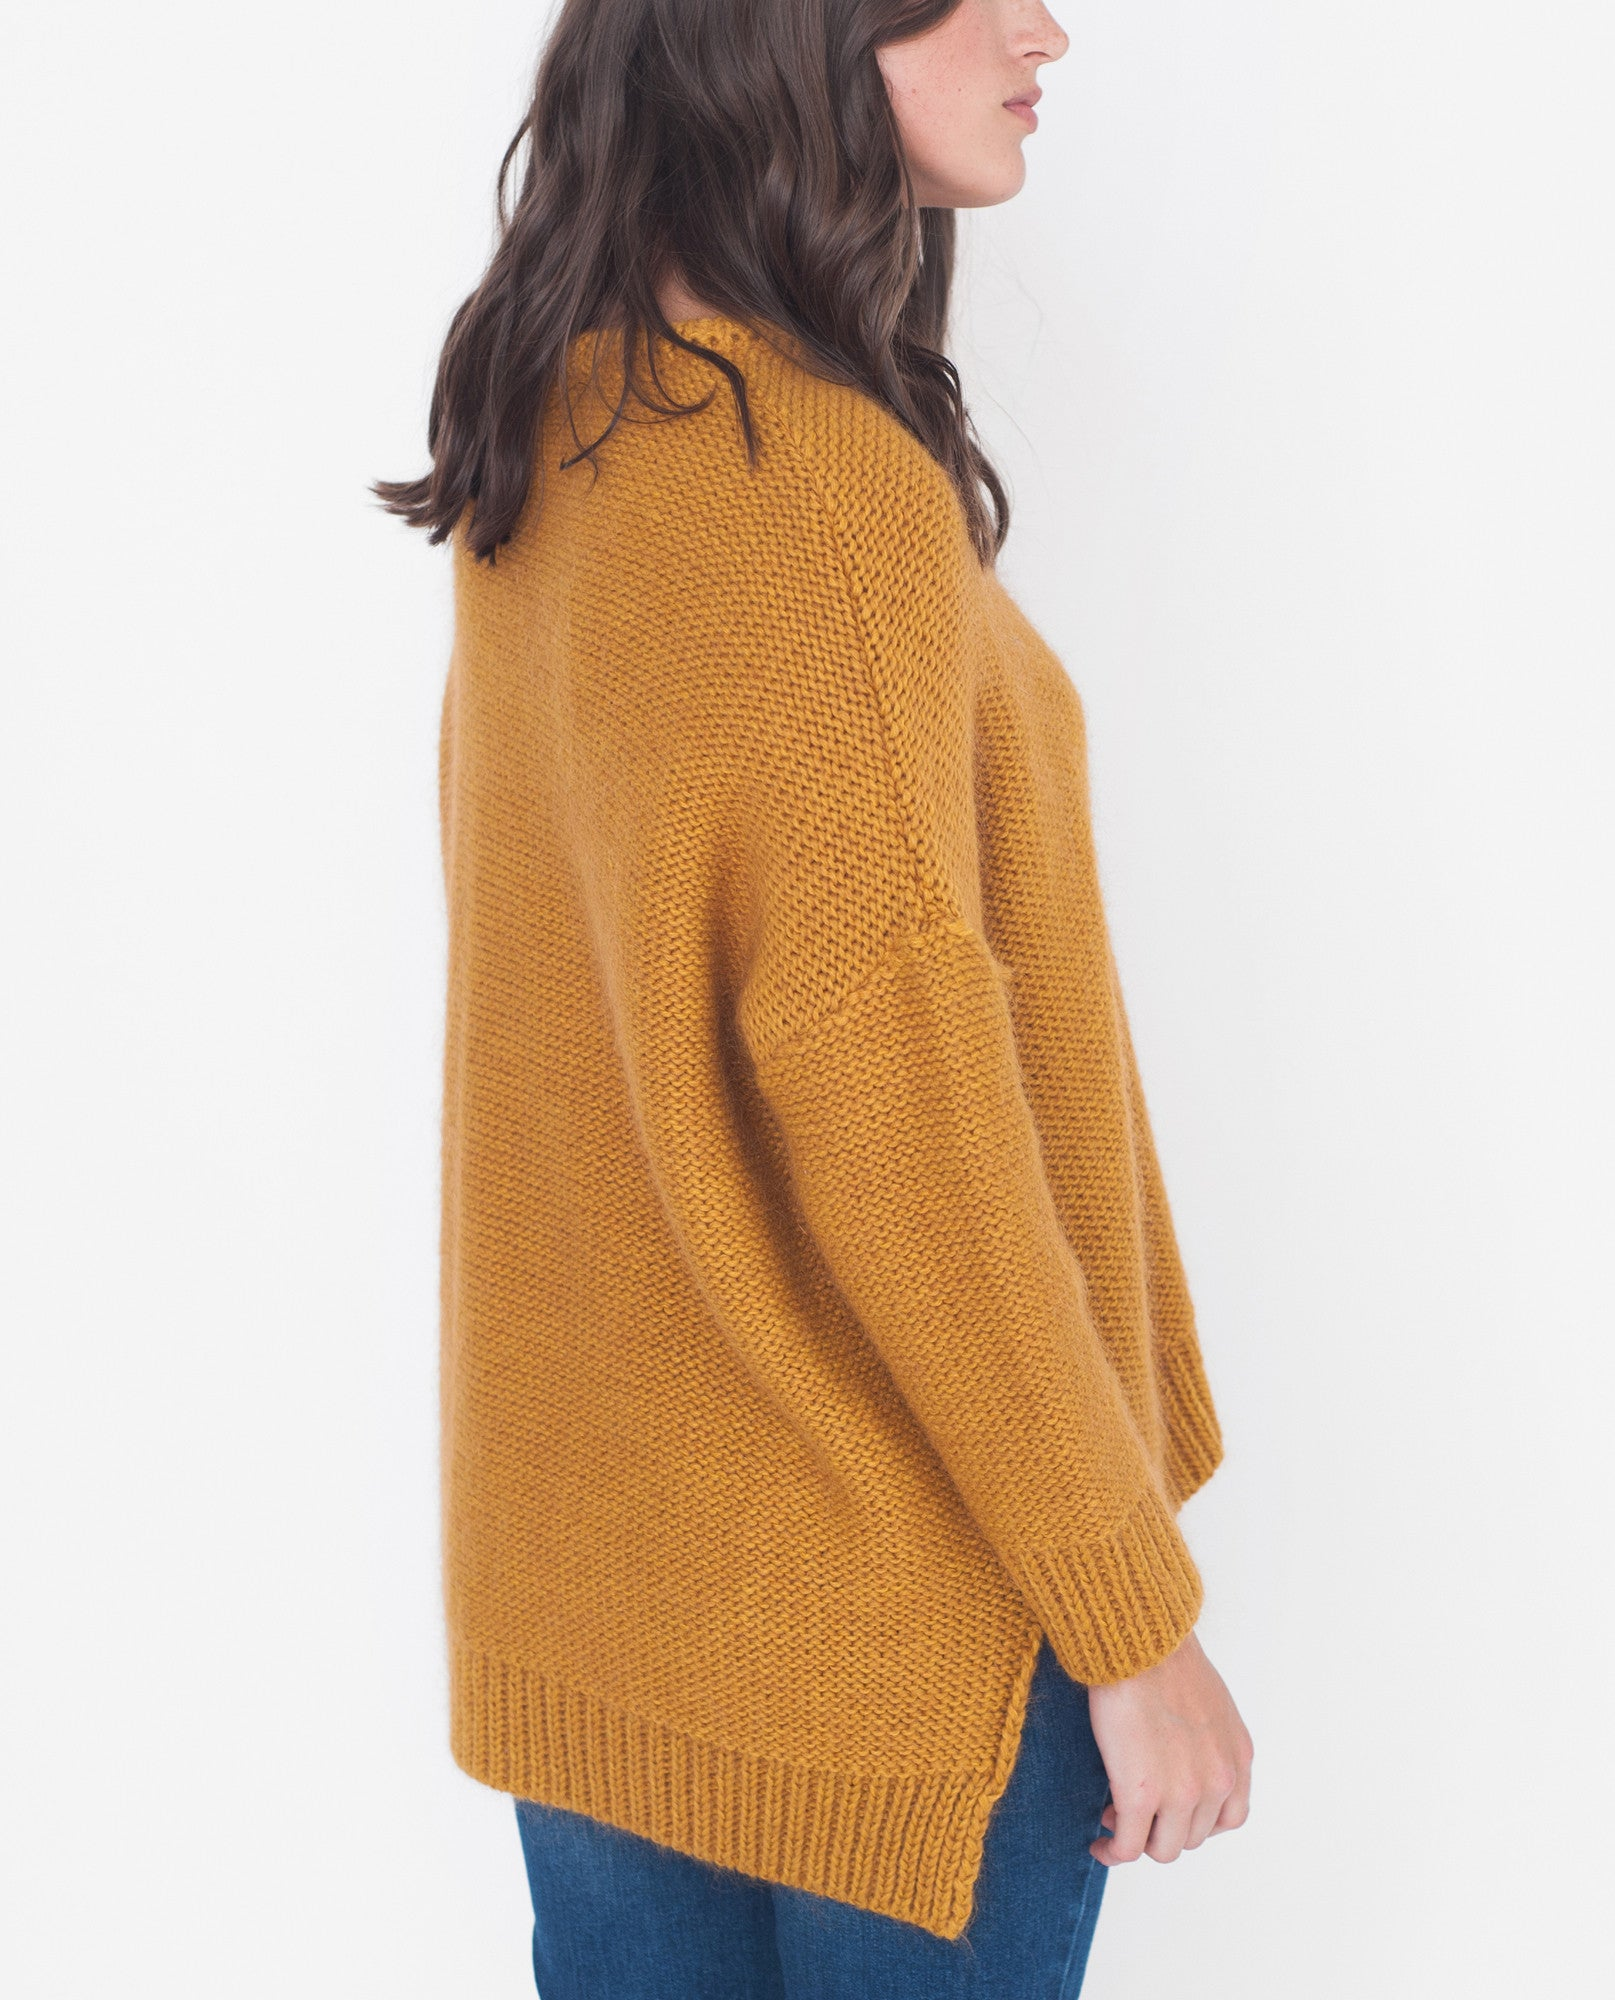 FAYE-MARIE Wool Knitted Jumper In Yellow